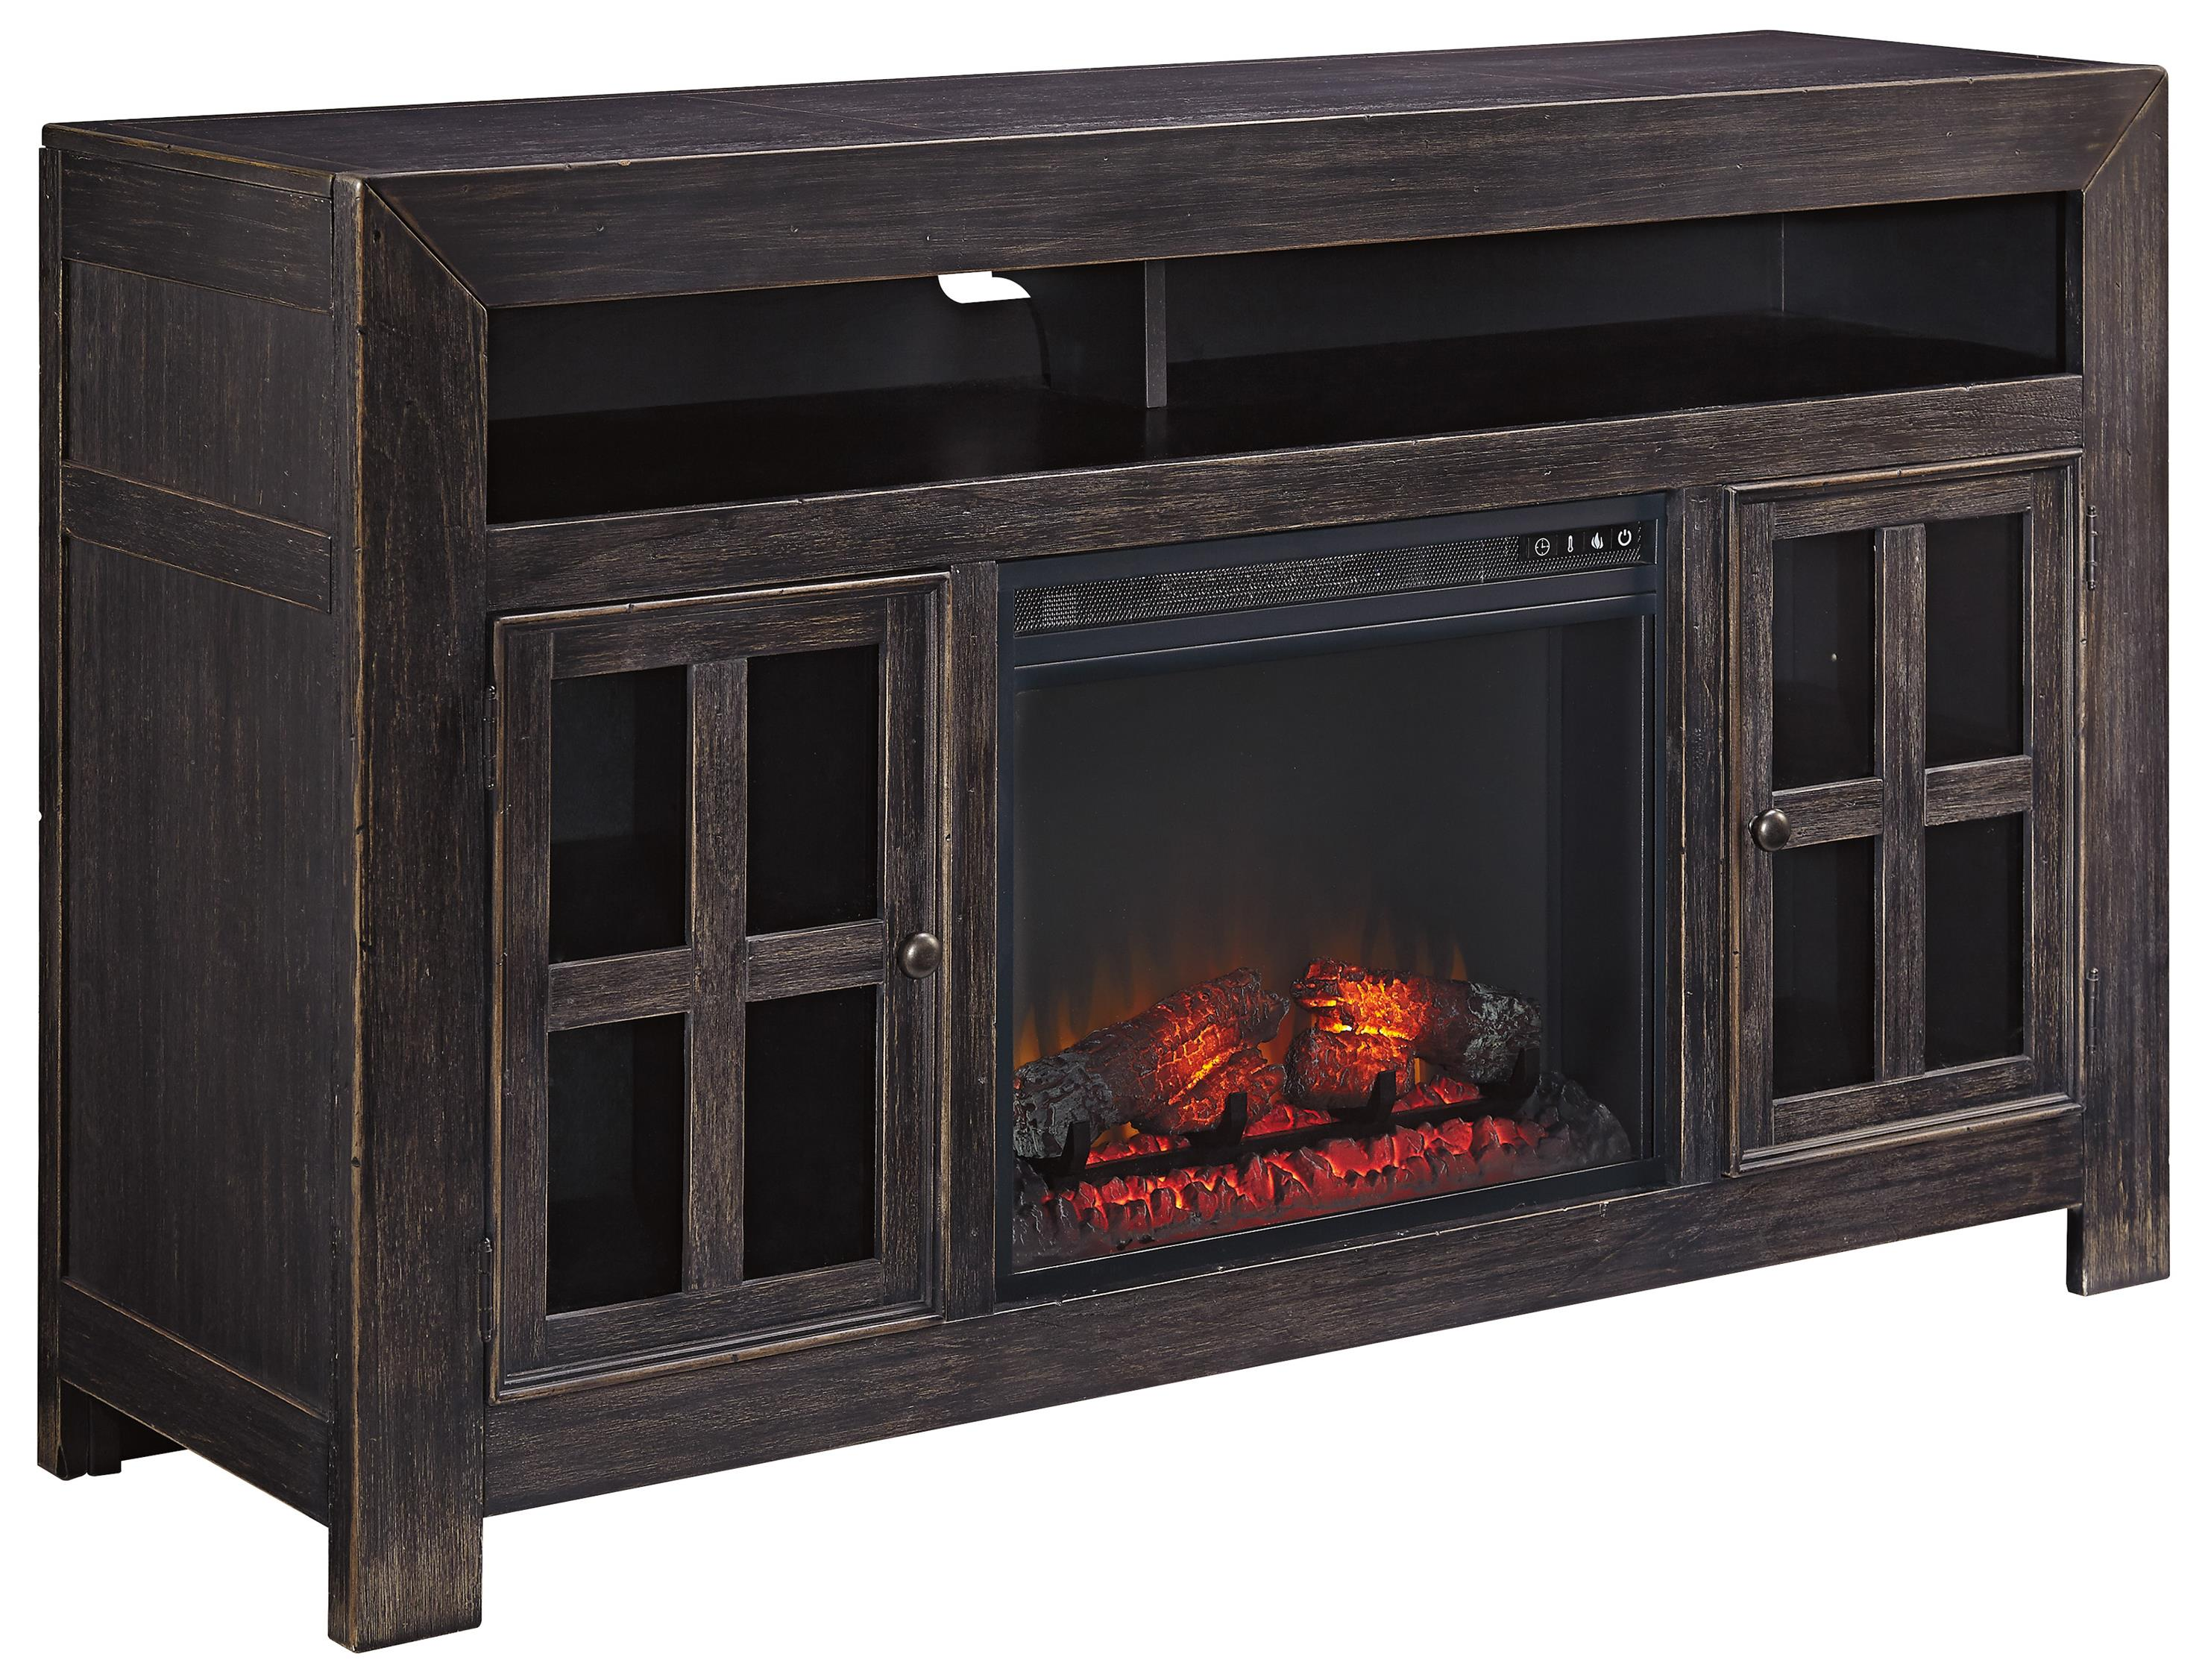 Distressed Black Large TV Stand With Electric Fireplace